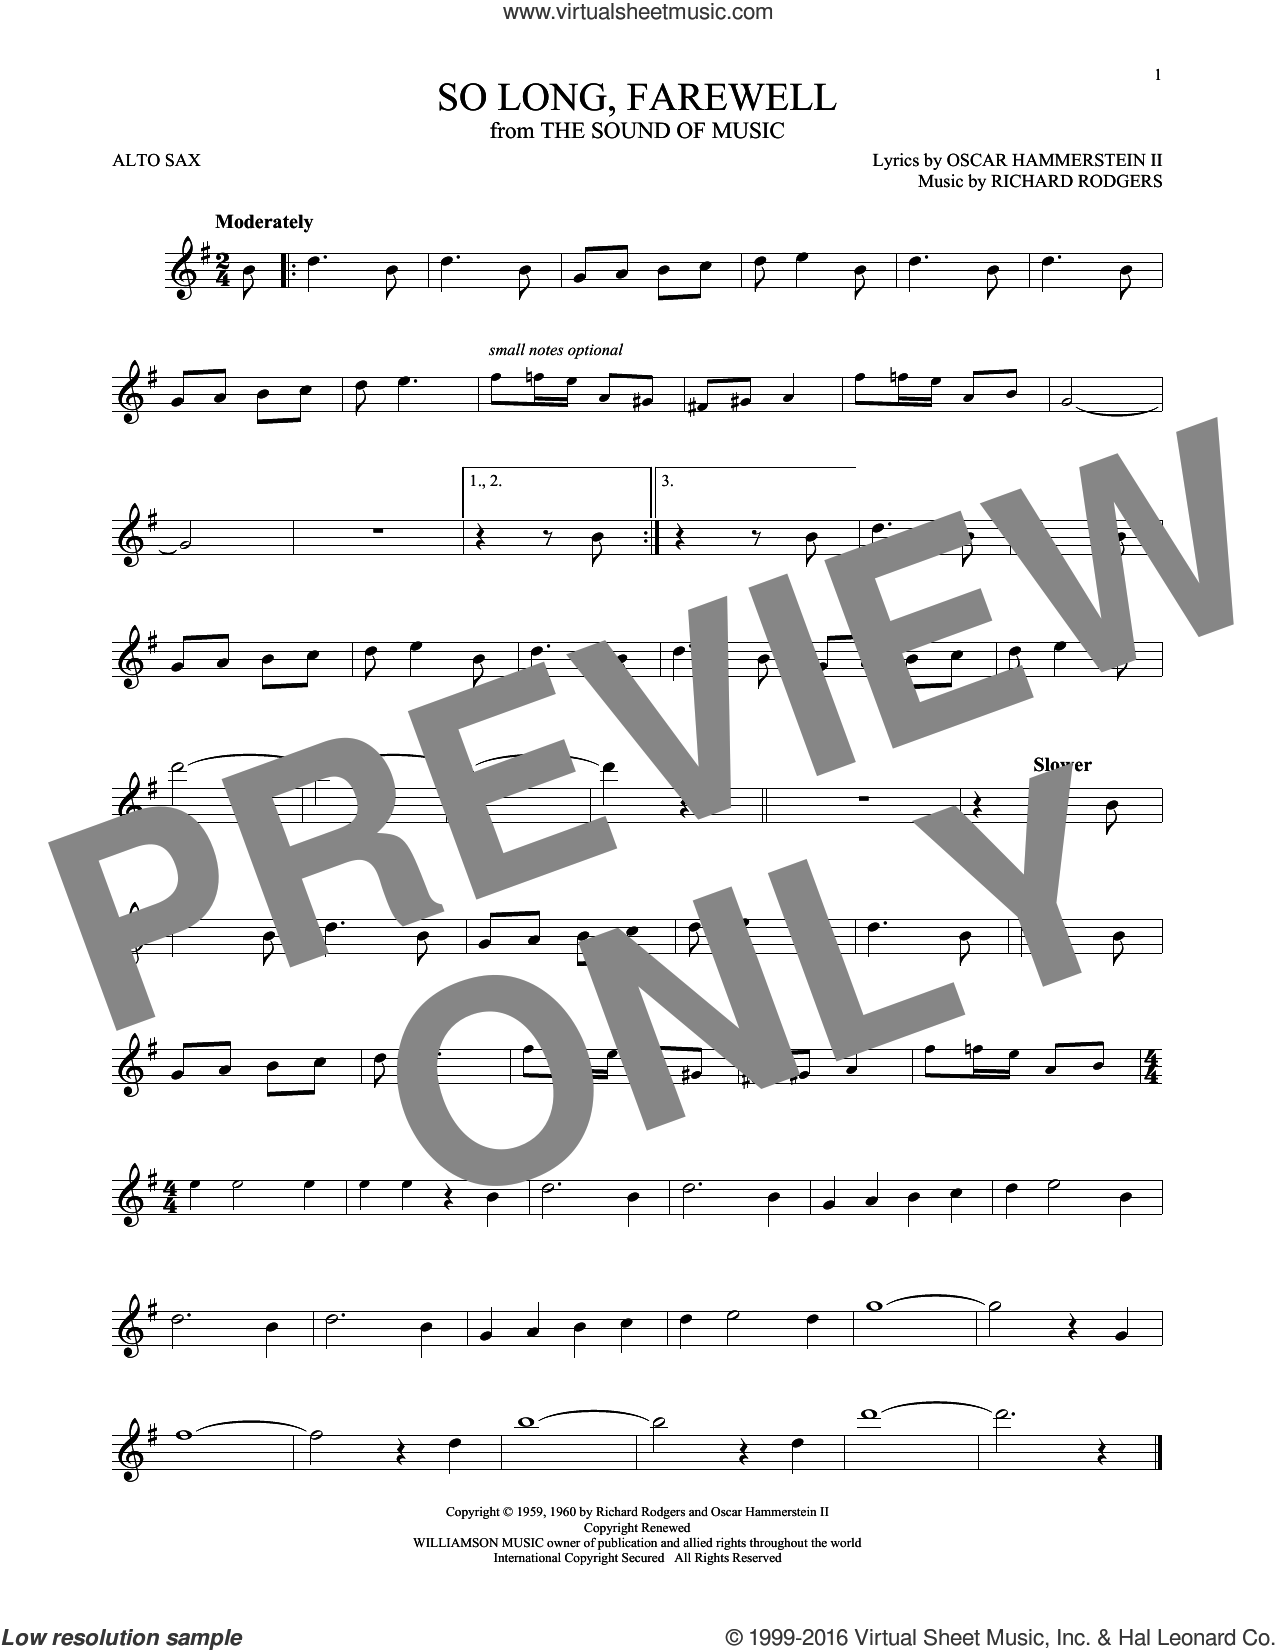 So Long, Farewell sheet music for alto saxophone solo by Rodgers & Hammerstein, Oscar II Hammerstein and Richard Rodgers, intermediate skill level